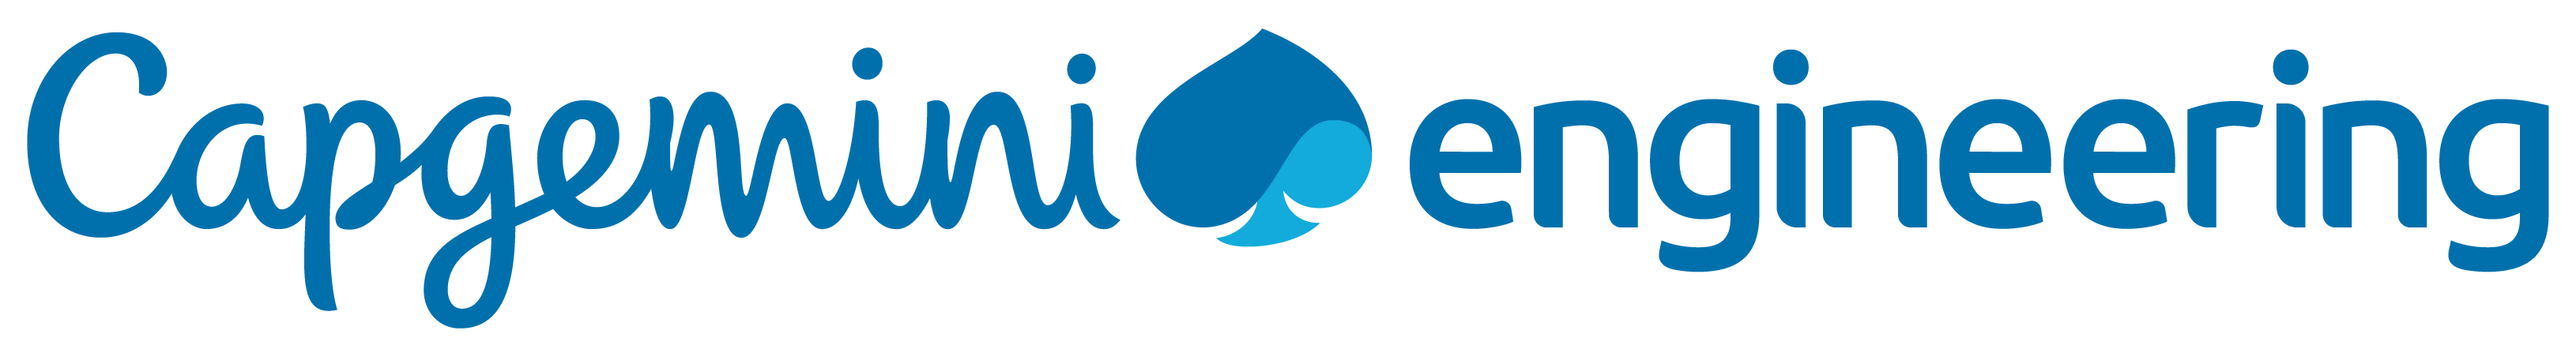 Capgemini Engineering Logo